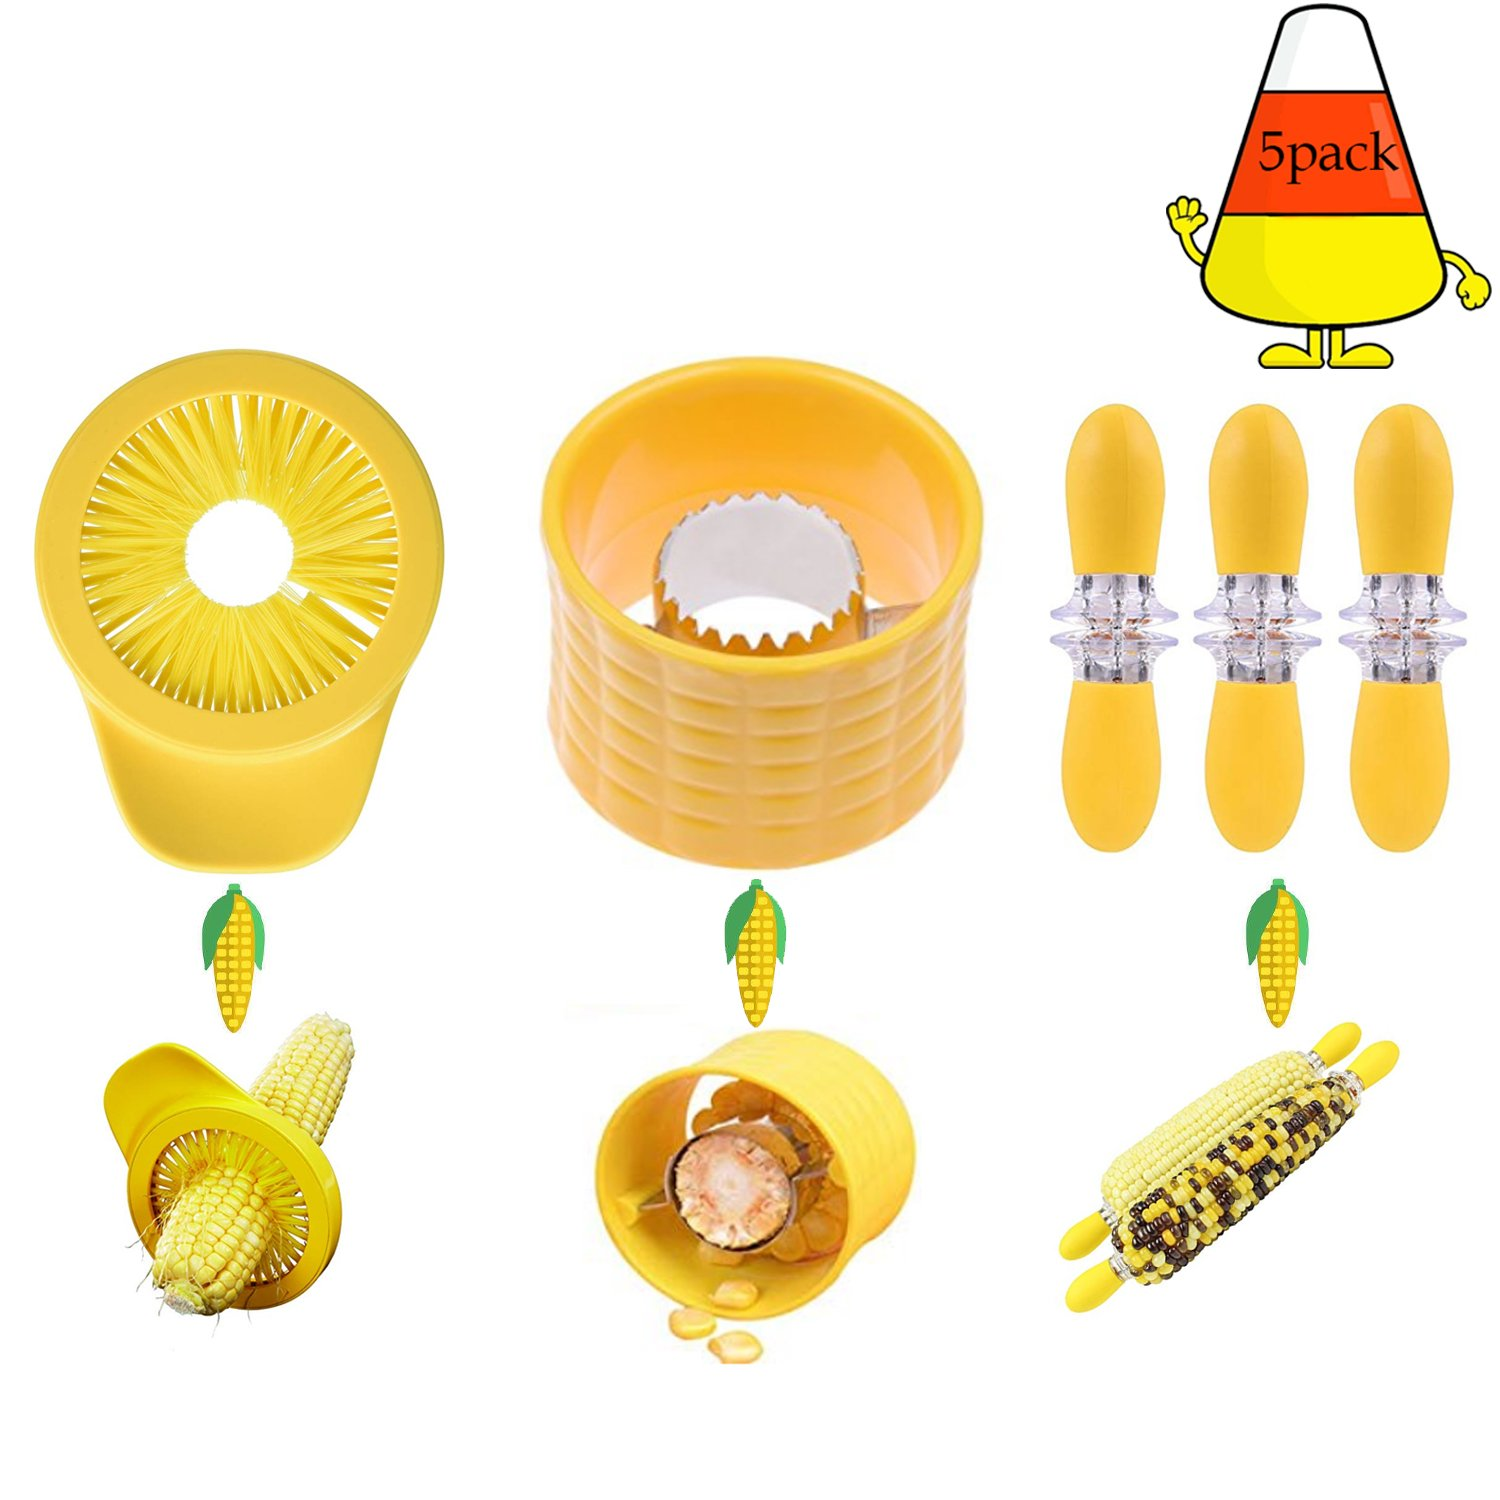 Corn Stripper Kerneler Peeler Kitchen Tools Set of 5 Cob Corn Stripper x1 Corn Desilker x1 Corn Cob Holders x3 Perfect for Home Cooking and BBQ by Derong Kitc (Image #2)